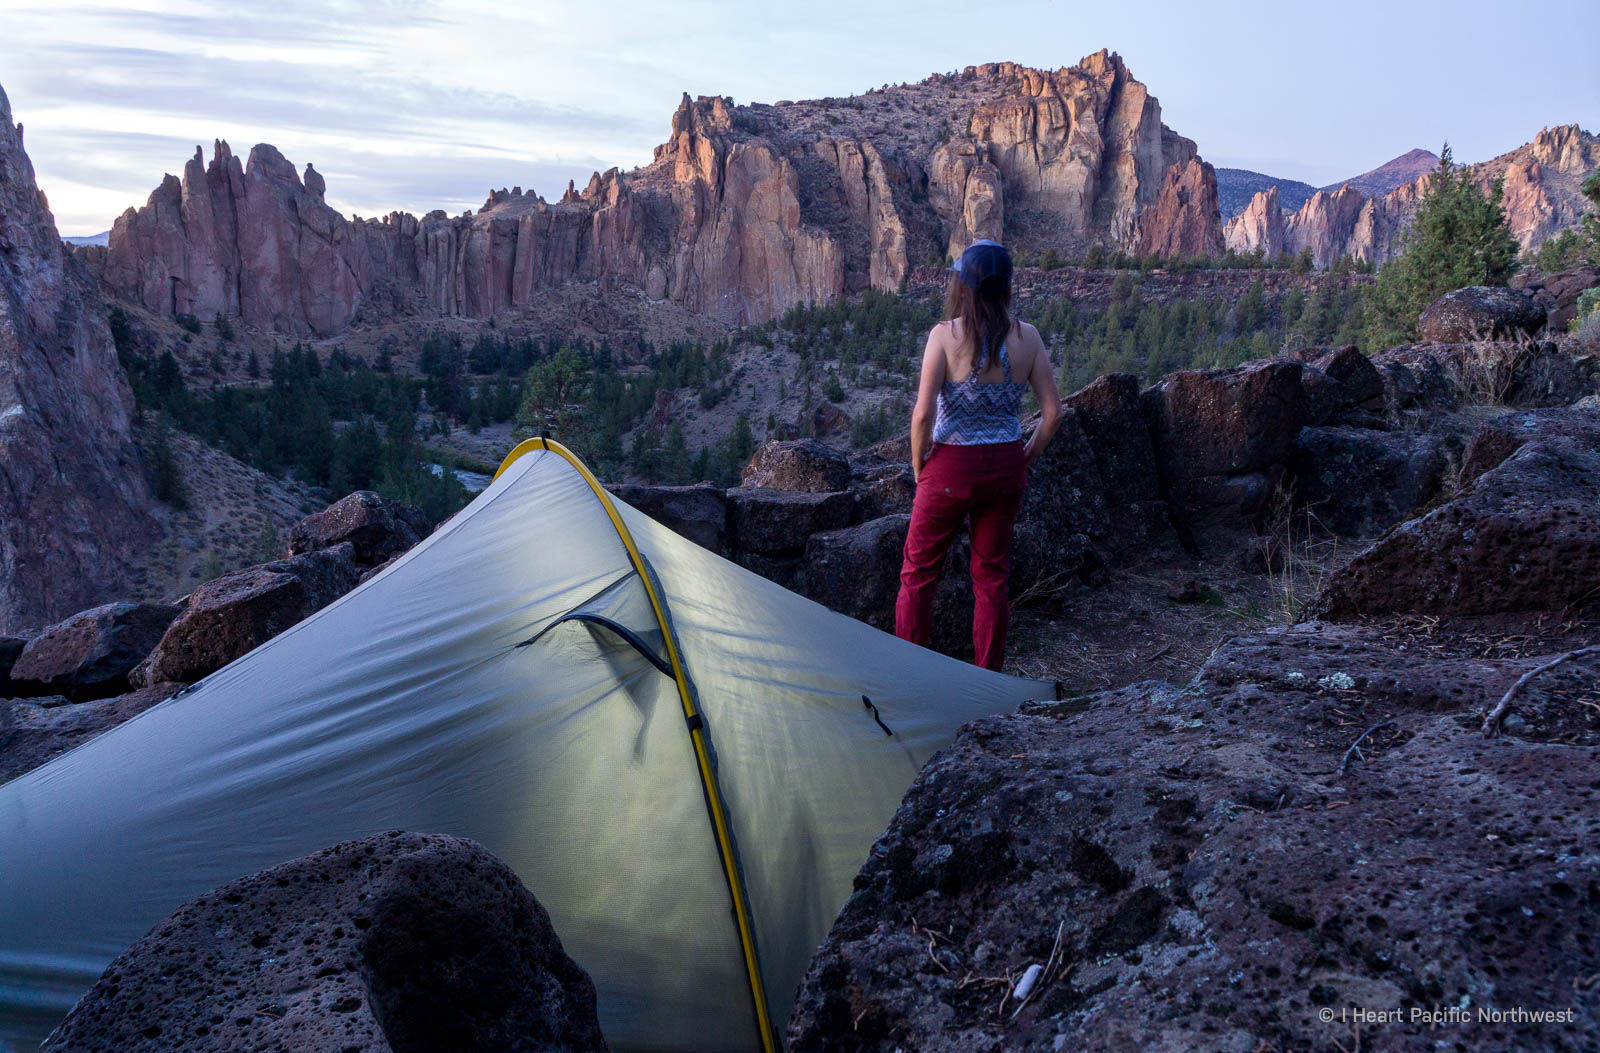 camping and hiking at Smith Rock State Park